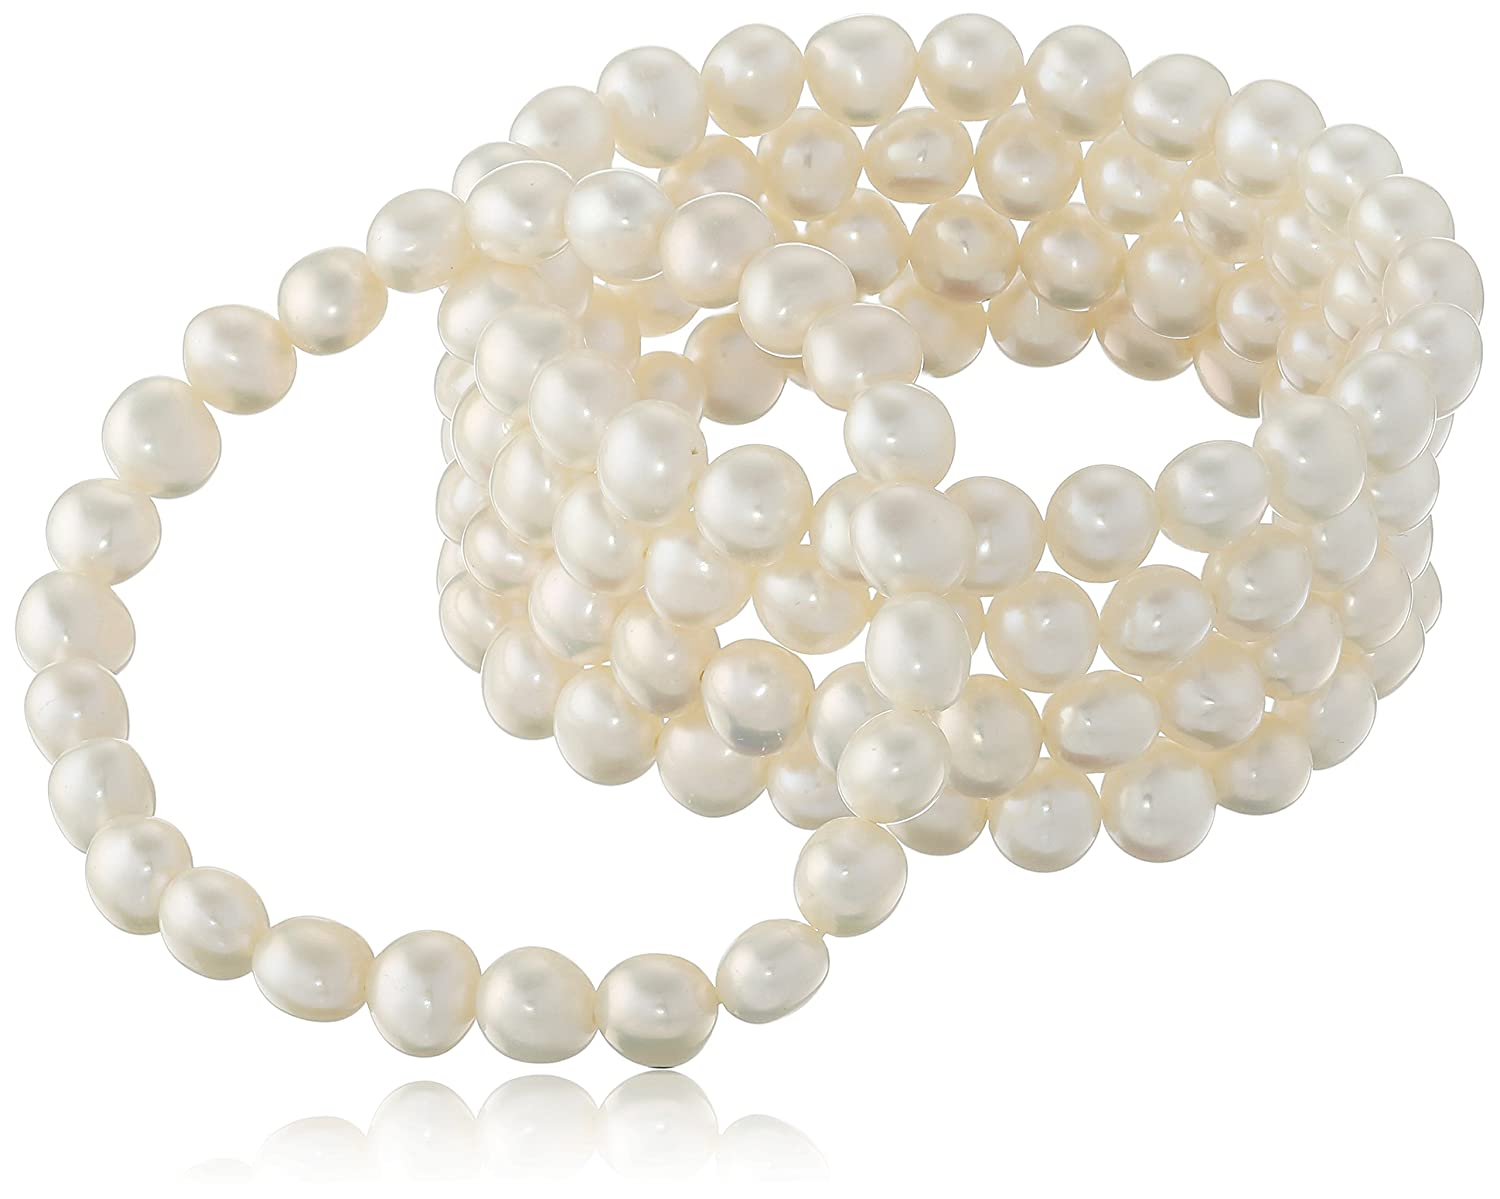 AuraPearl Set of Five Chinese Freshwater Cultured Pearl (7-8 mm) Stretch Bracelets, 7.5 7.5 Amazon Collection MCS3925WH